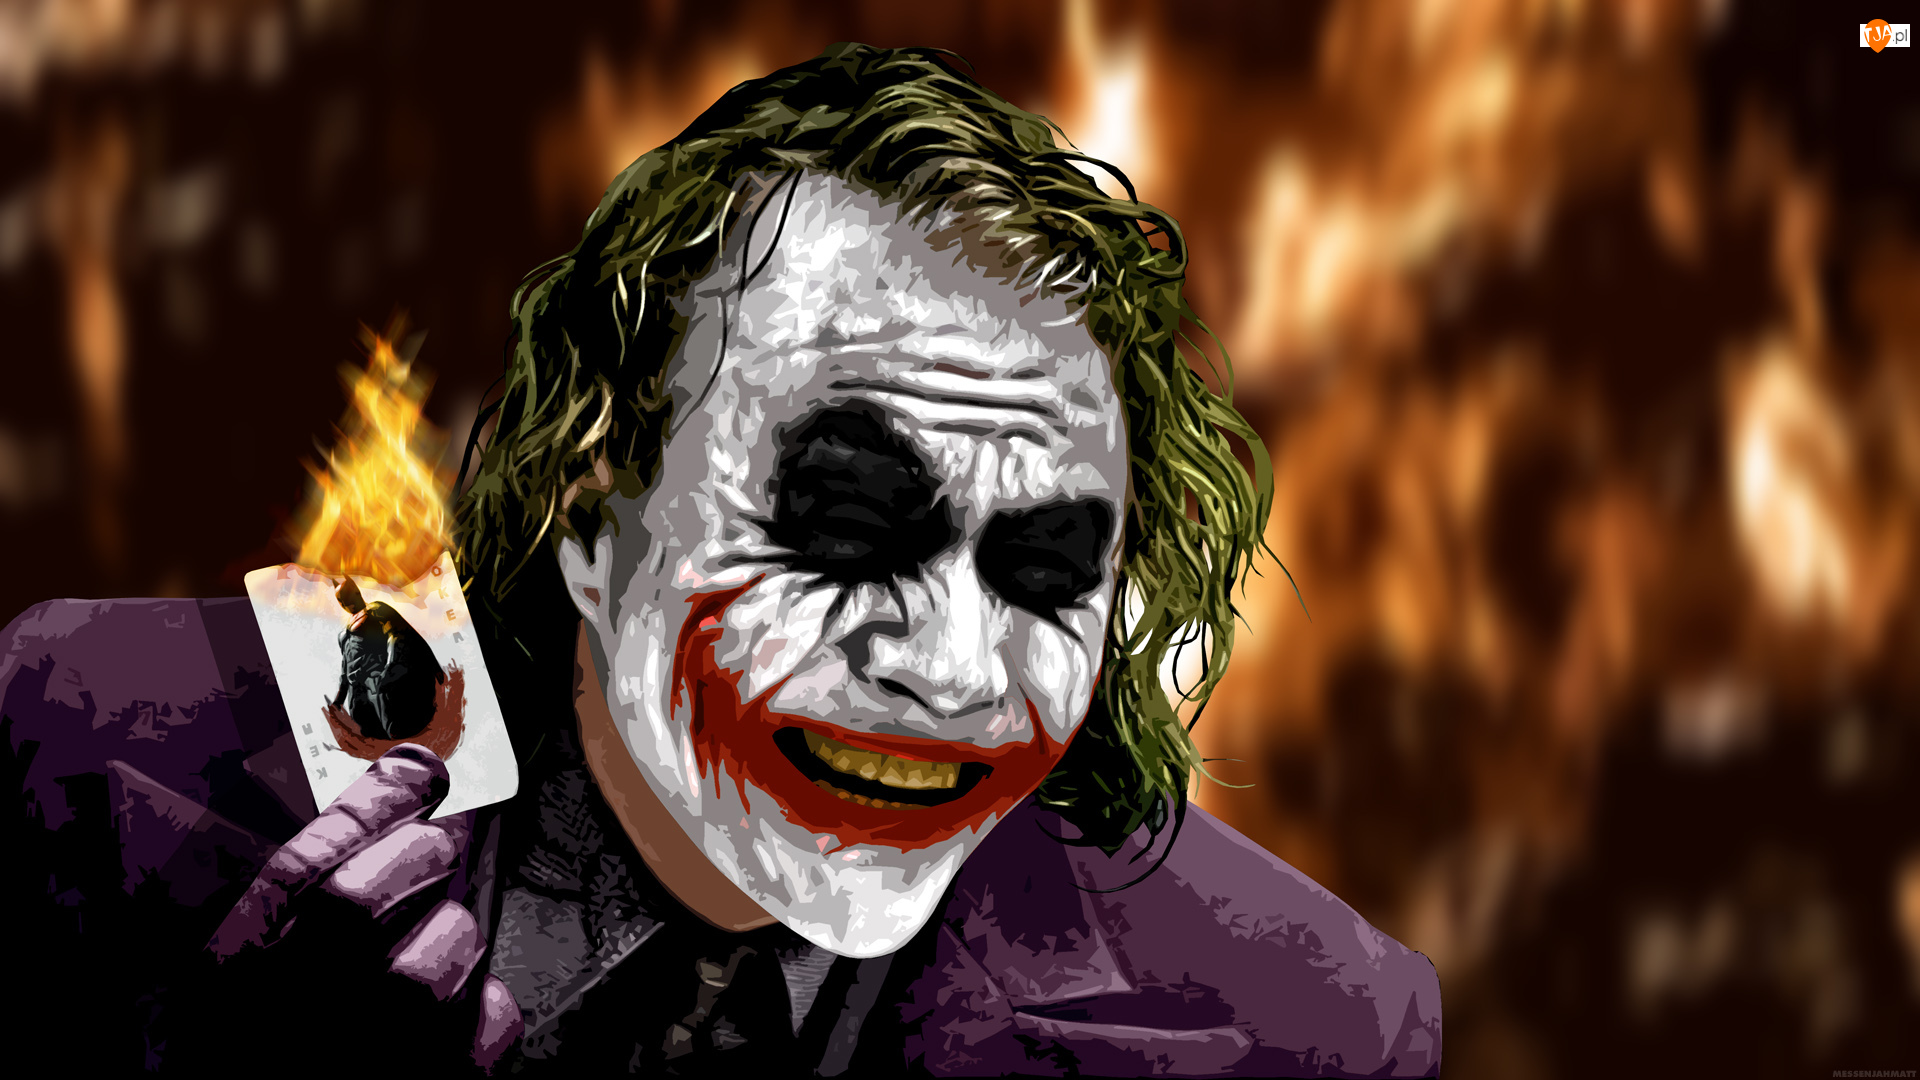 Joker, Grafika, Batman Dark Knight, Film, Mroczny rycerz